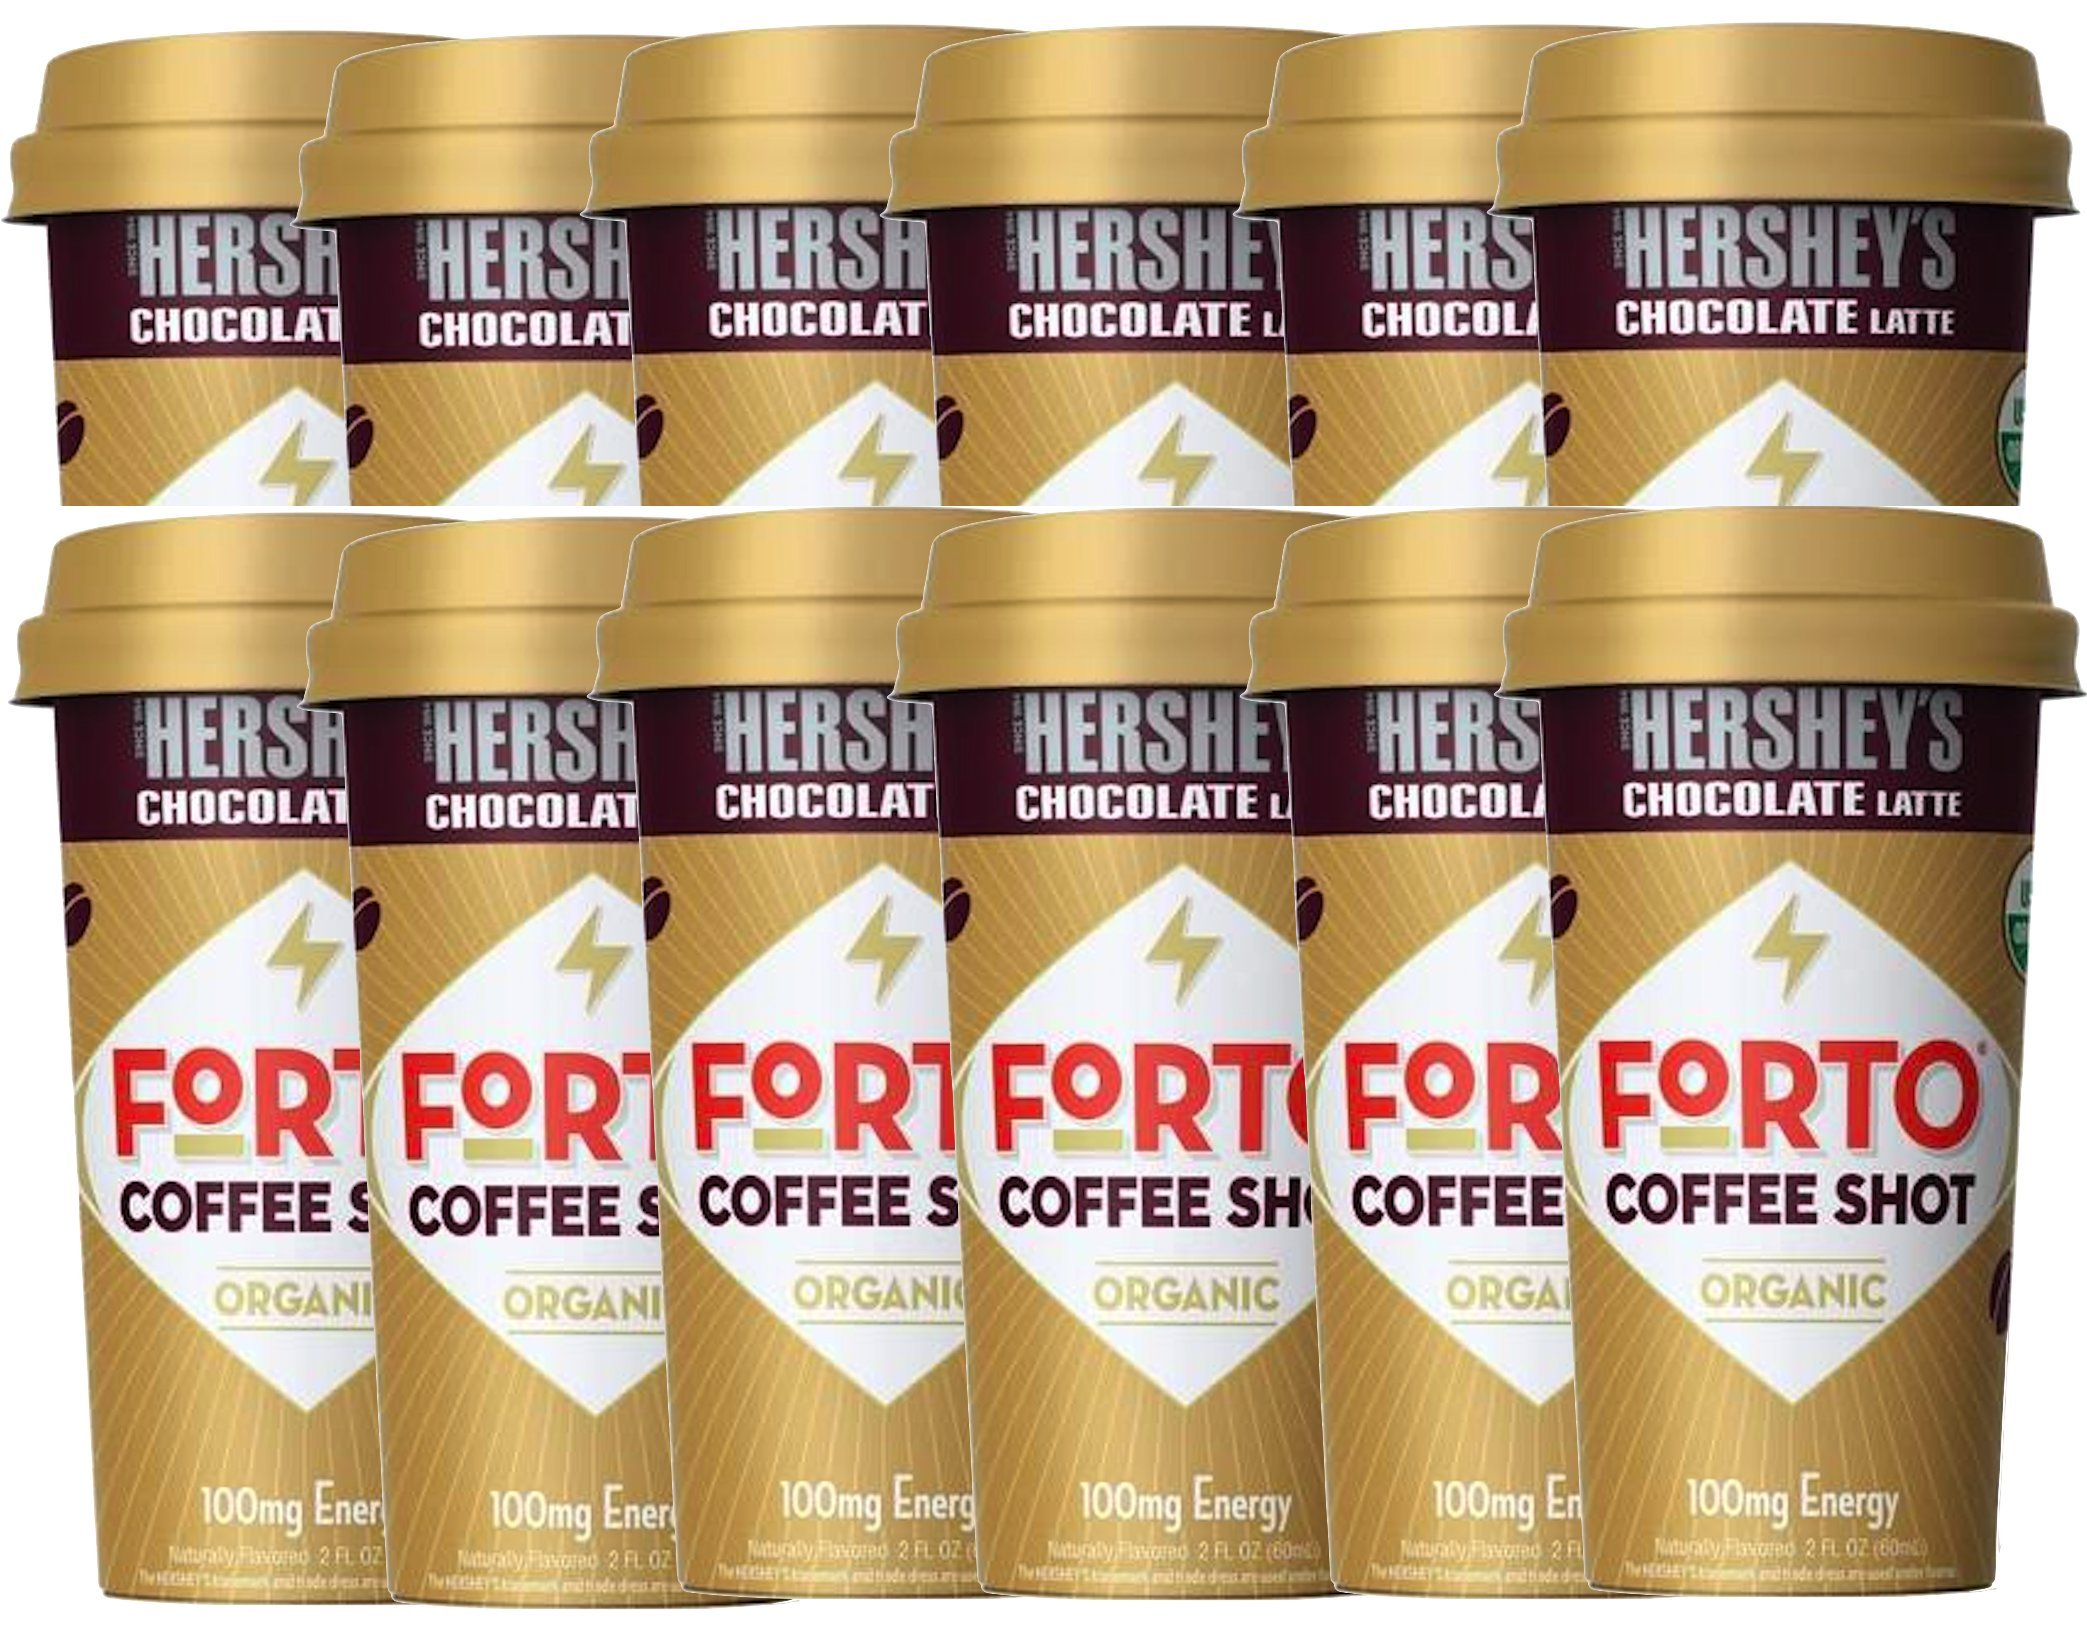 NEW Forto Coffee Shots Organic Hershey's Chocolate Latte,/Vanilla Latte 100mg Energy (Hershey's, 12)